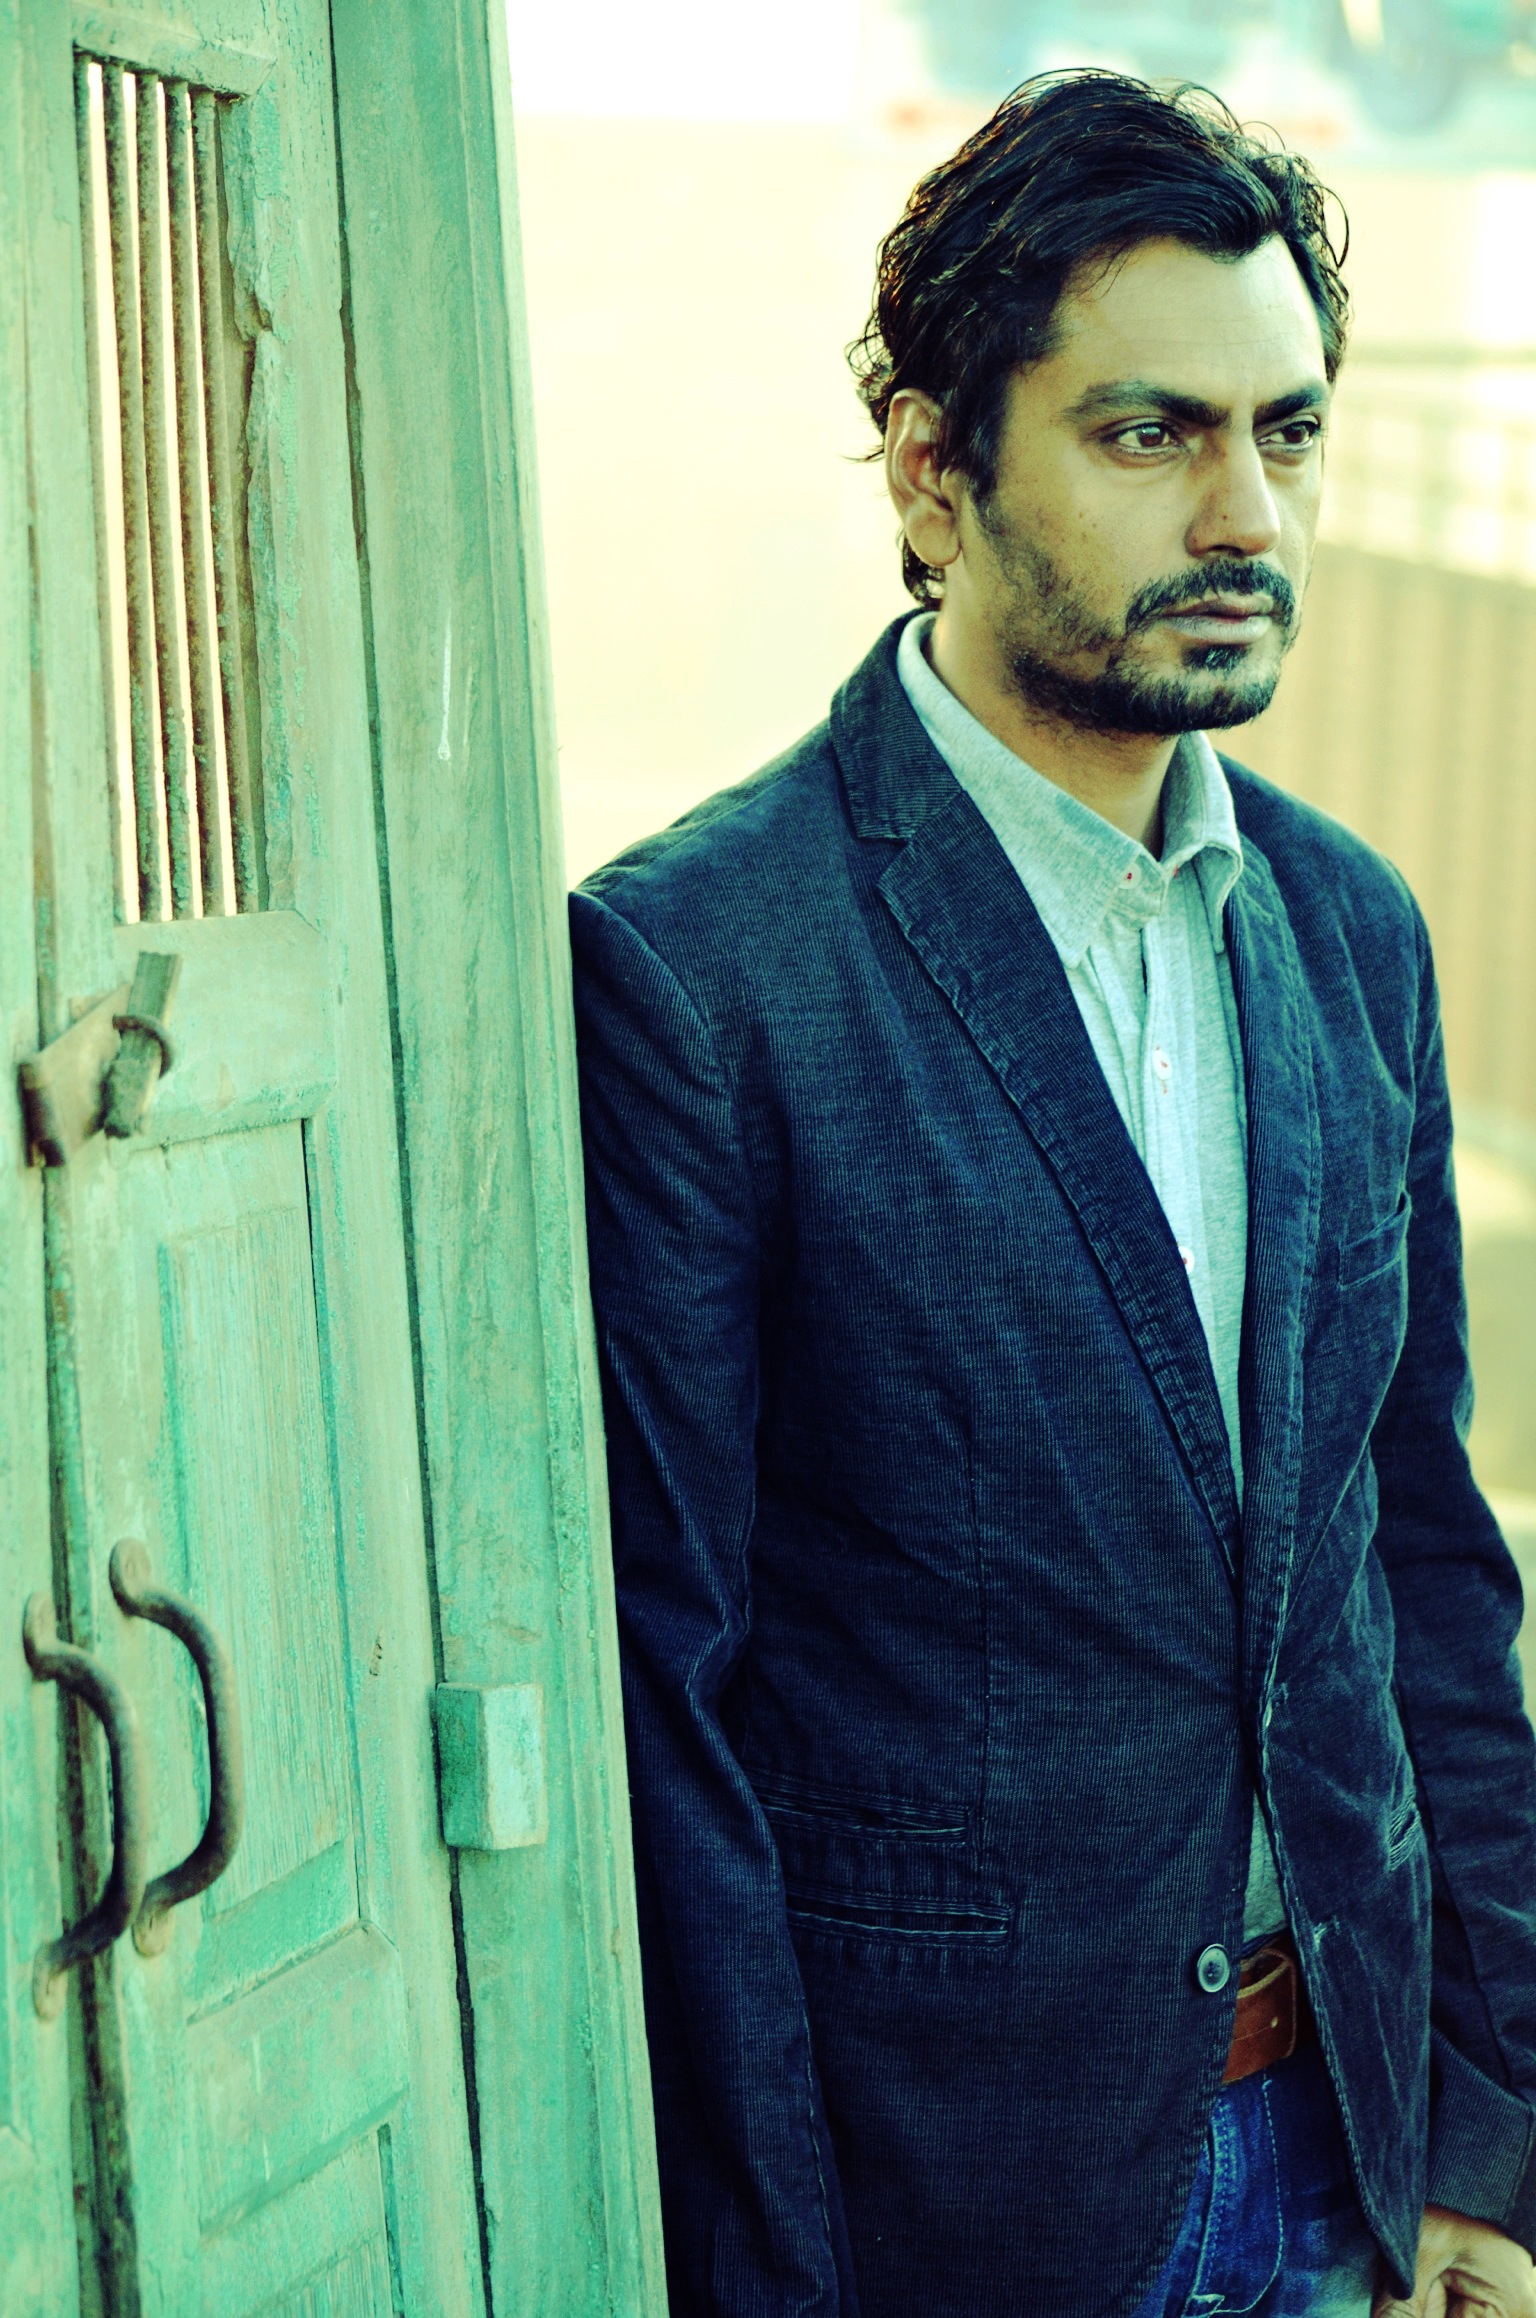 nawazuddin siddiqui movies list